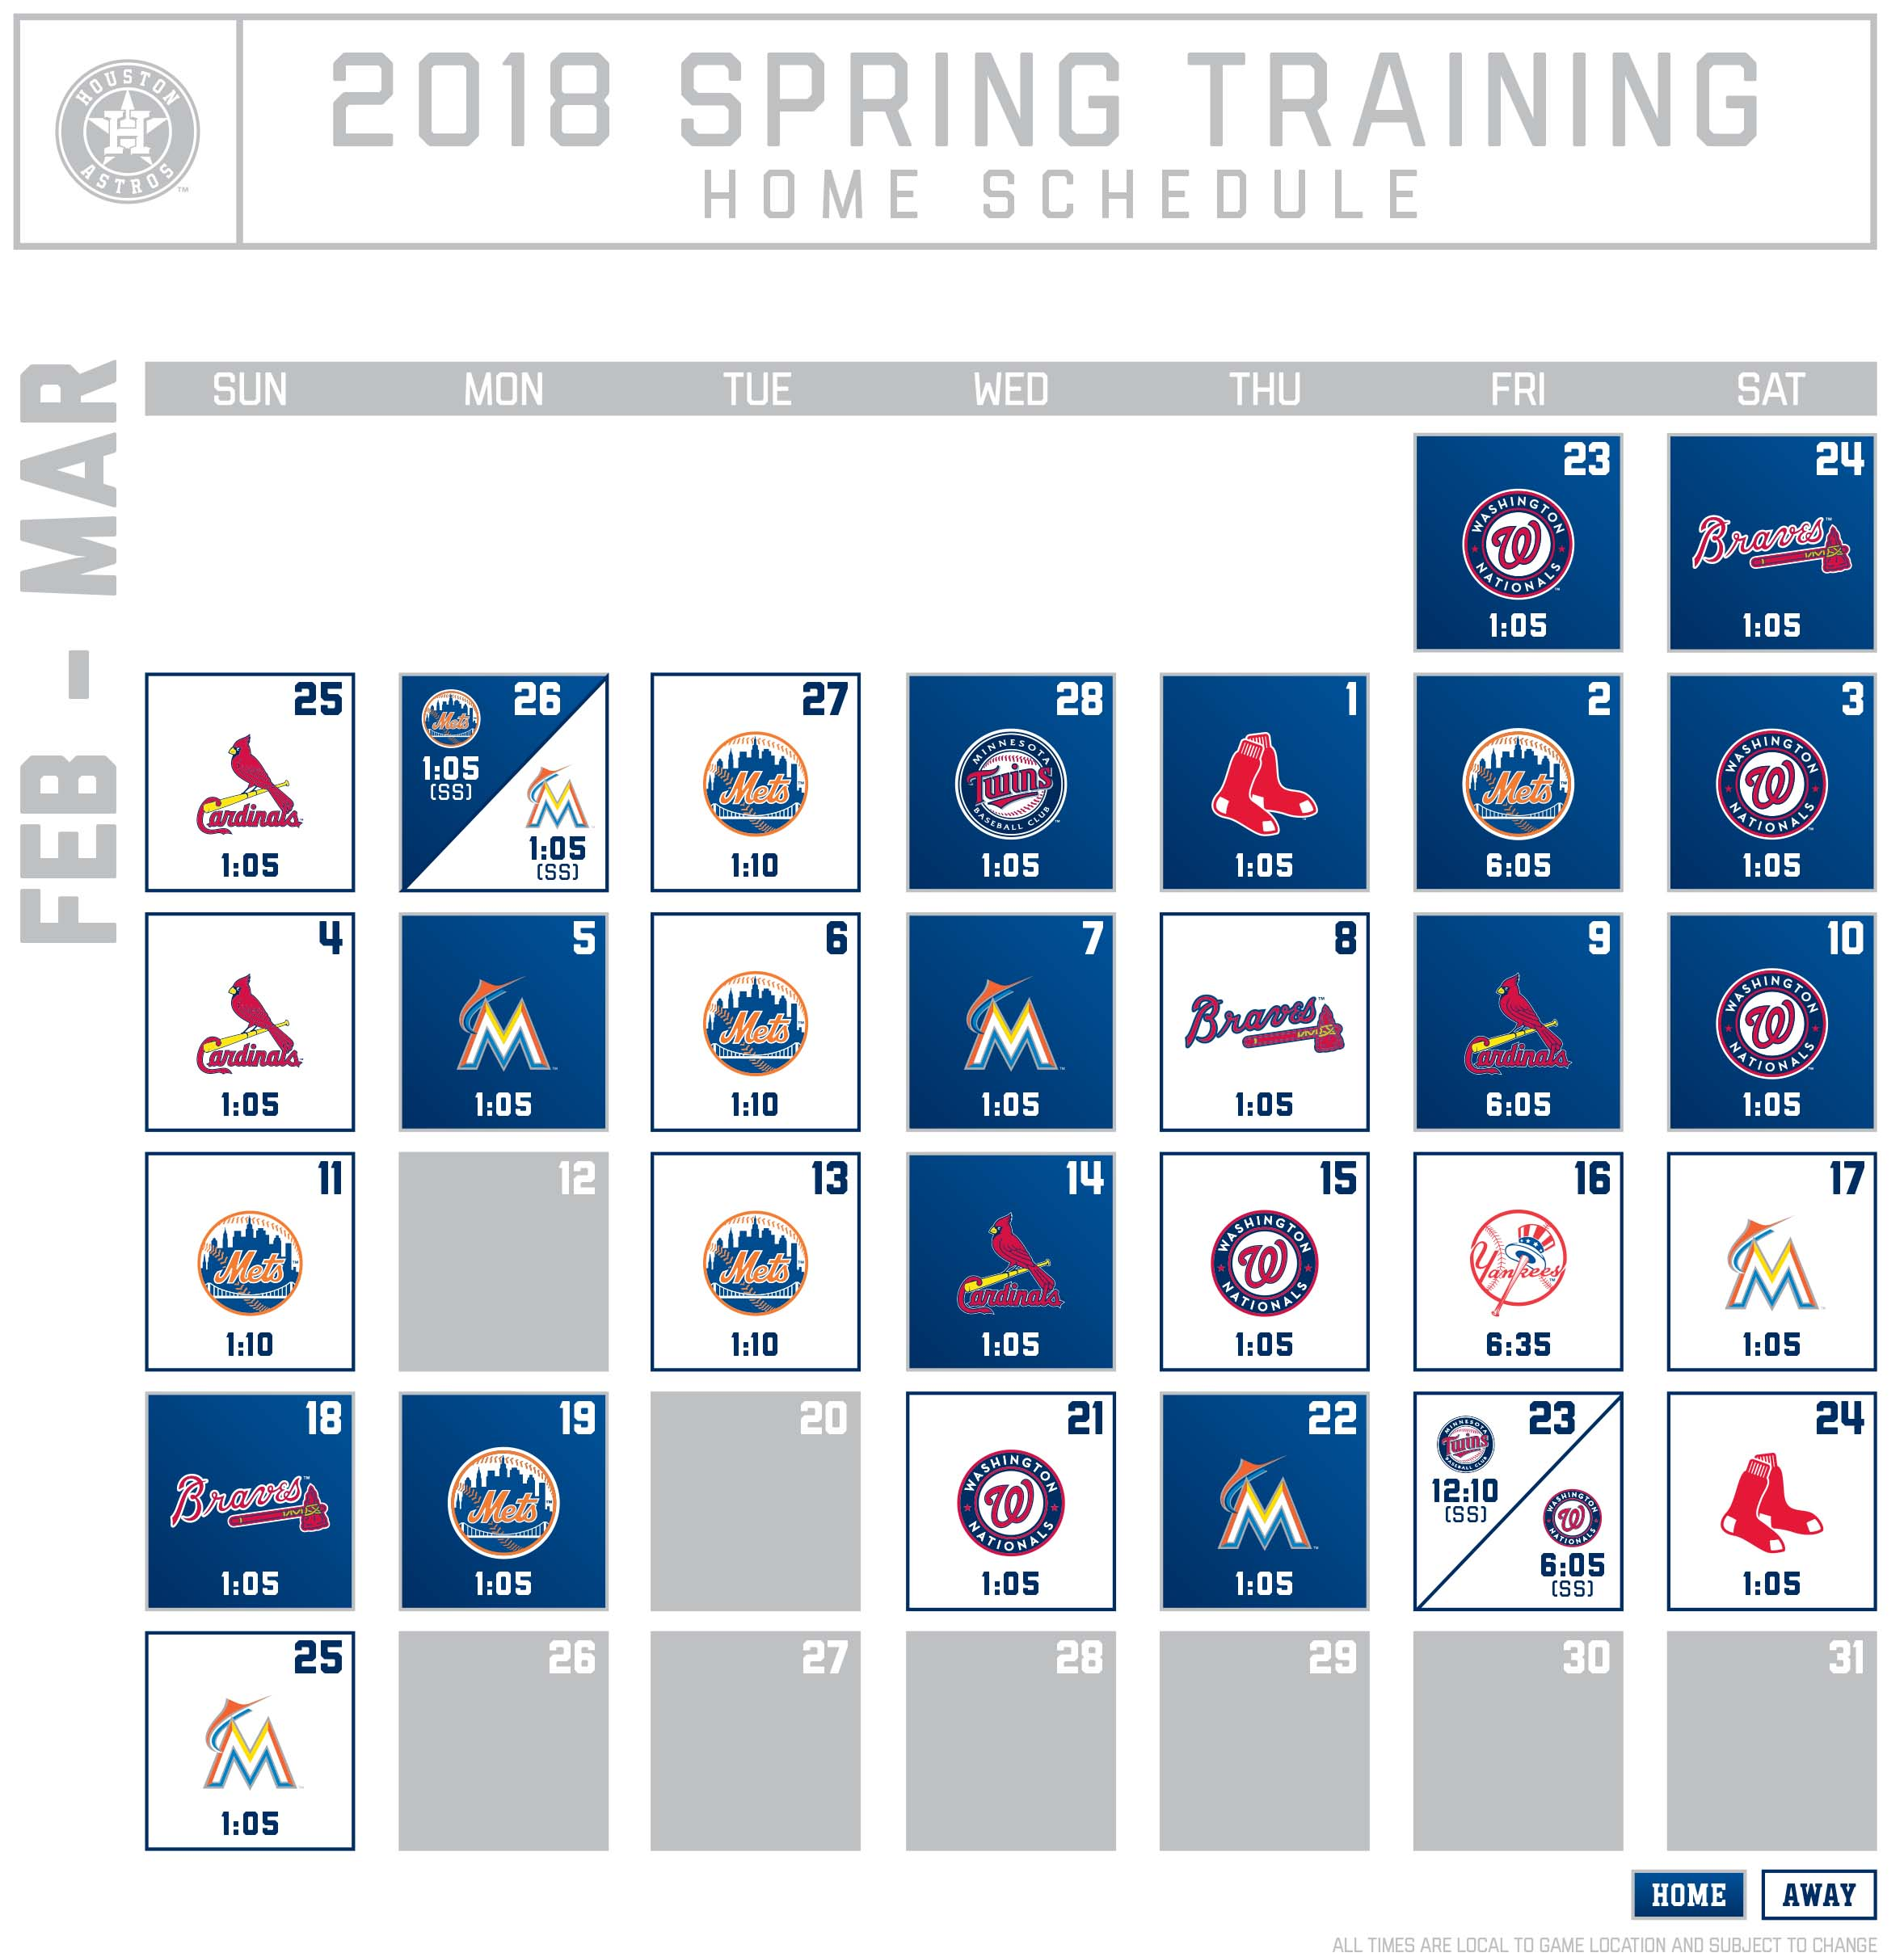 Nationals release 2018 Spring Training schedule